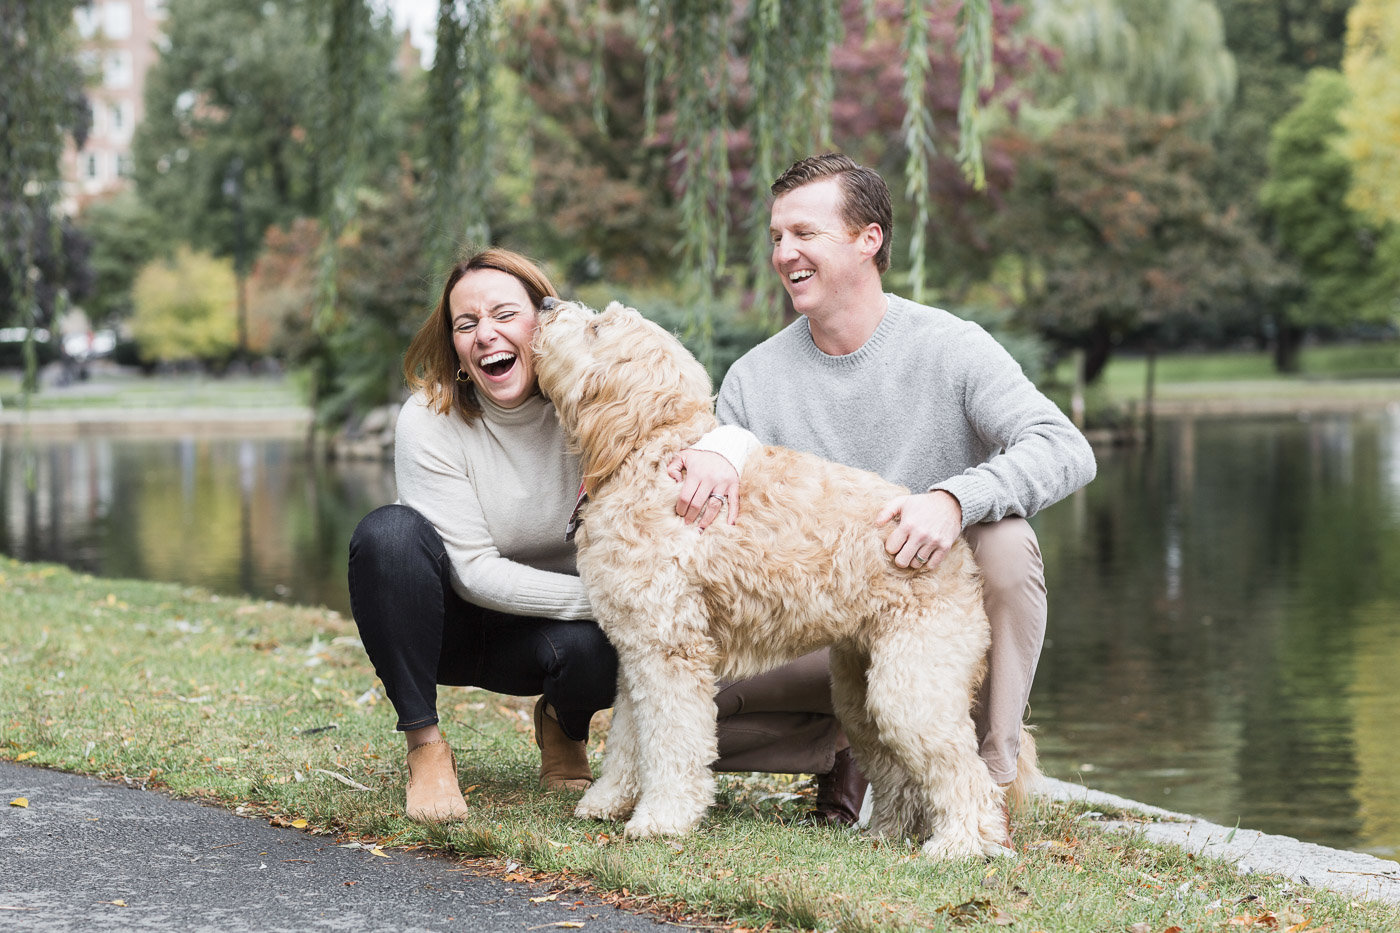 goldendoodle licking woman's face in Boston Public Garden